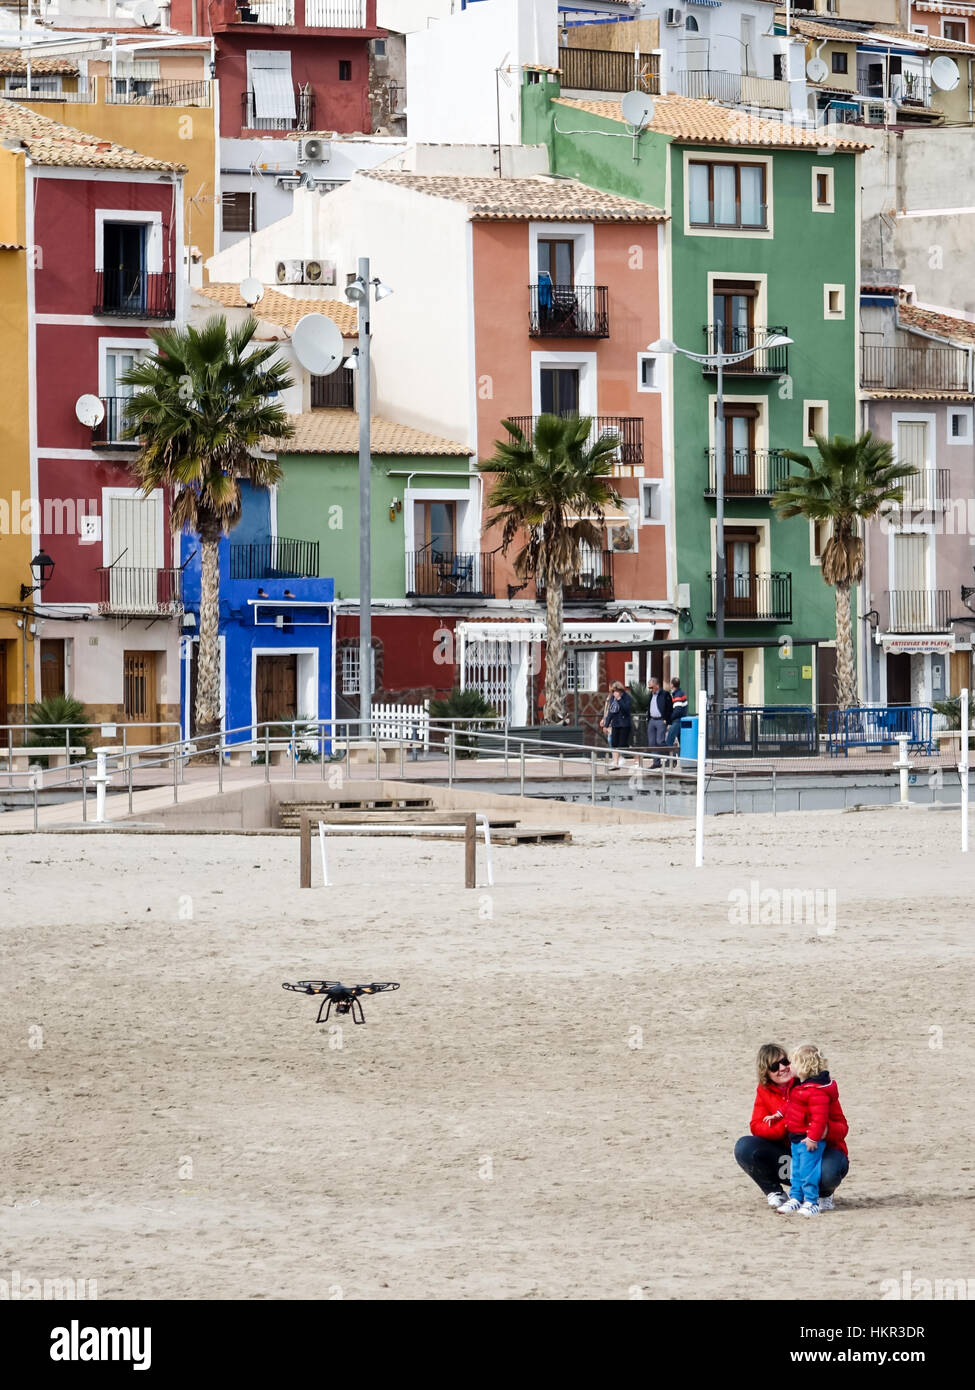 Quadcopter drone flying over a beach in Villajoyosa, Alicante Province, Spain. With mother and child watching. - Stock Image